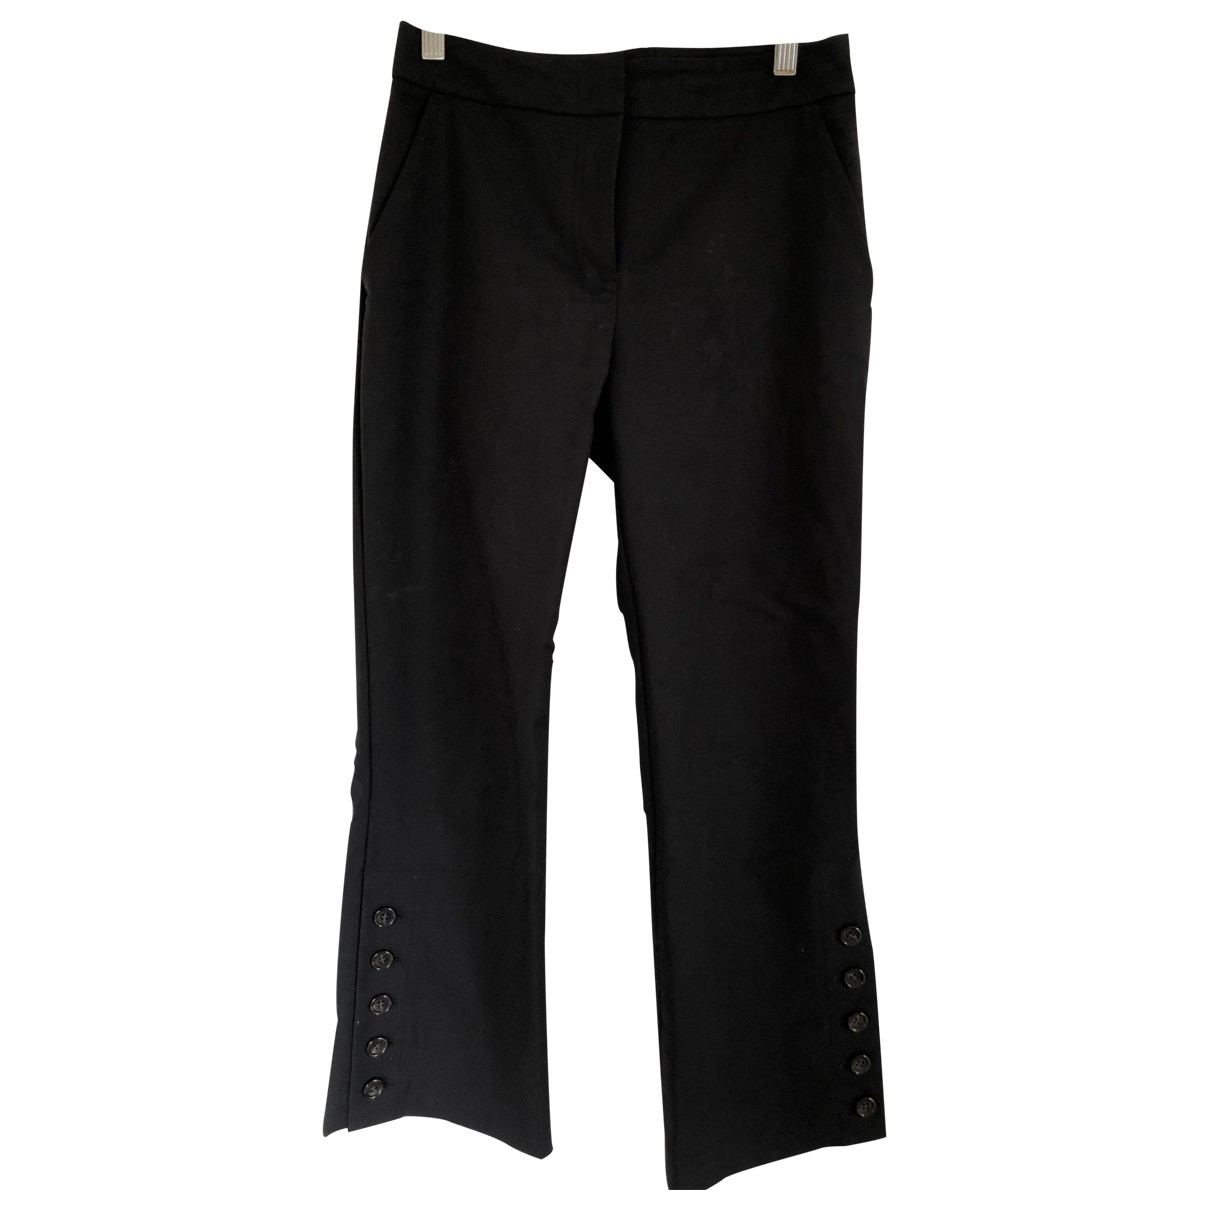 Dkny \N Black Cotton Trousers for Women 2 US